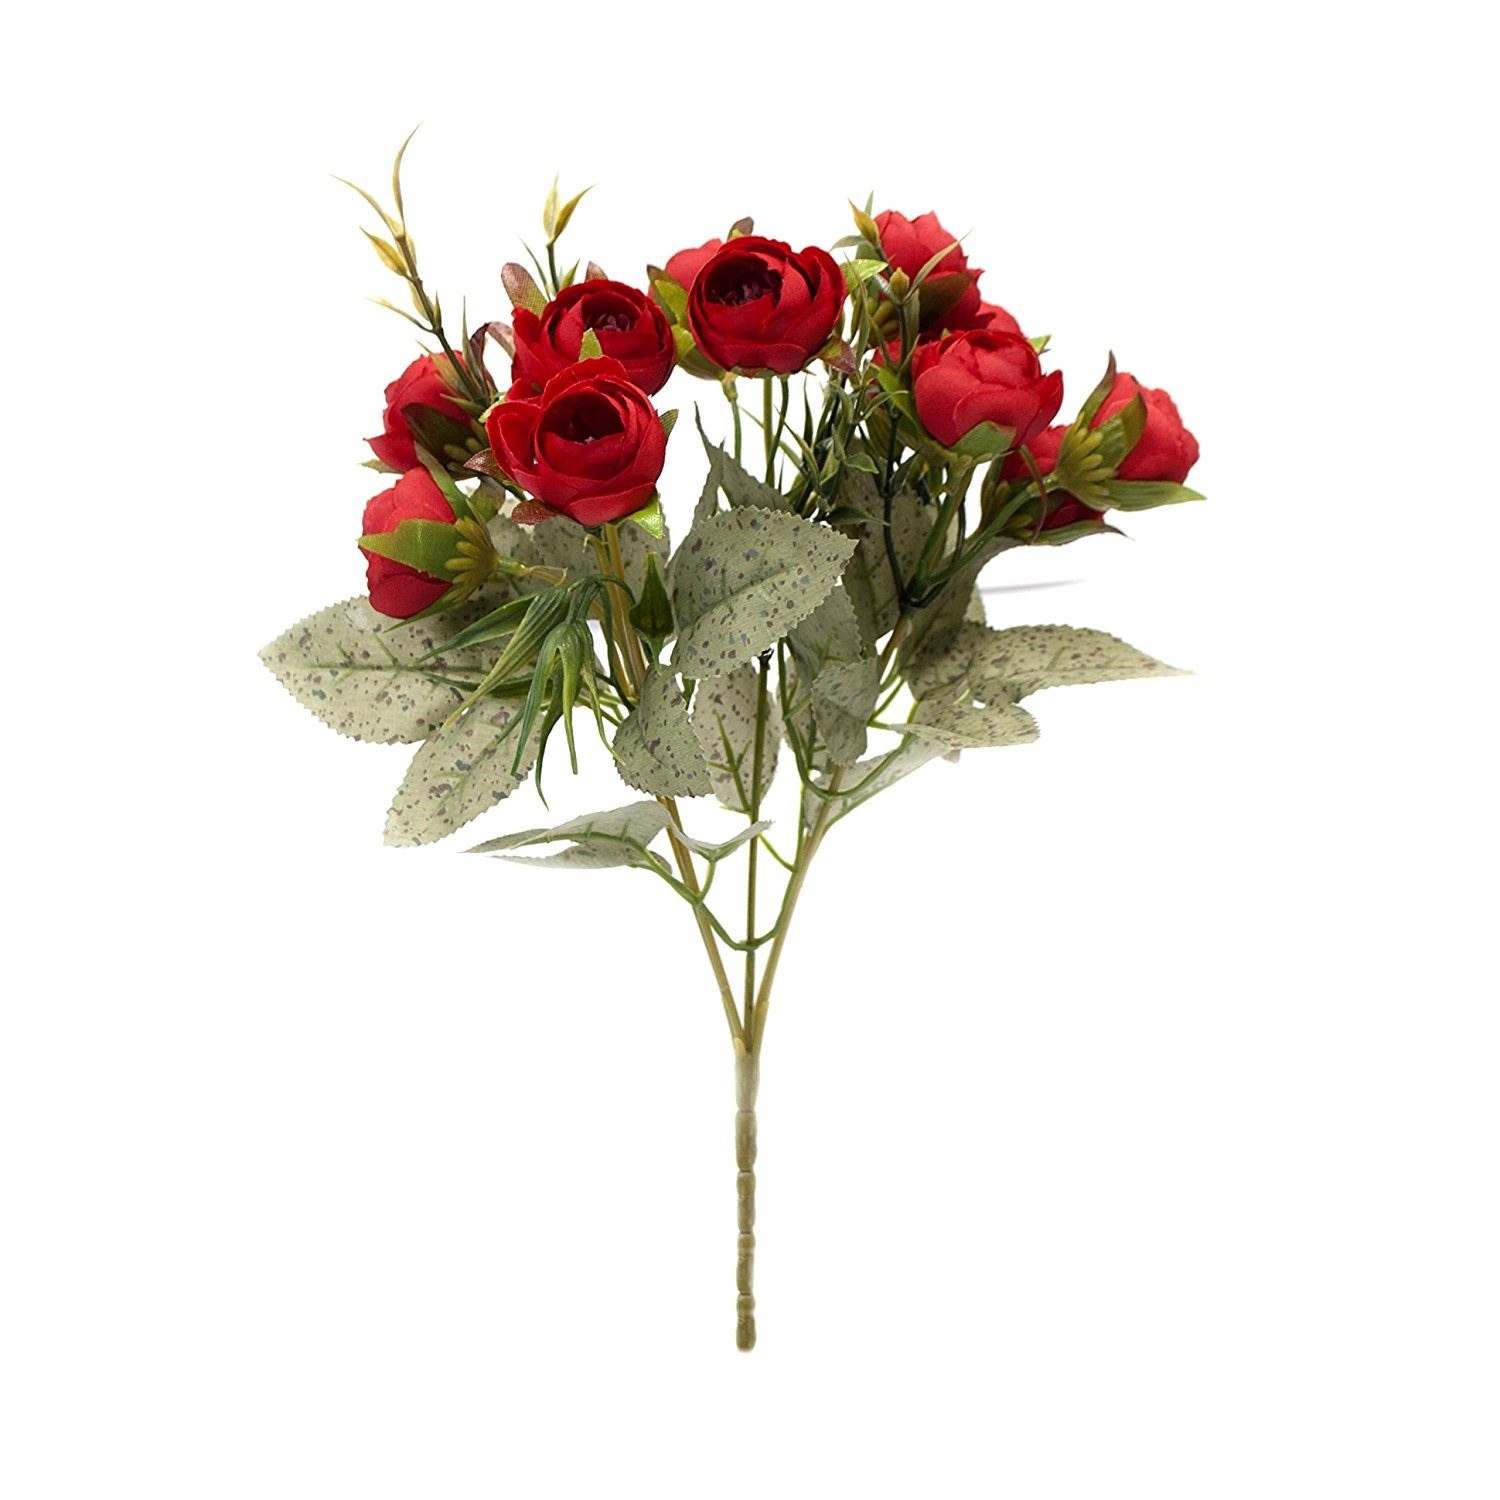 Artificial 12 Inches Long Silk Flower Roses Bouquet, Red Color